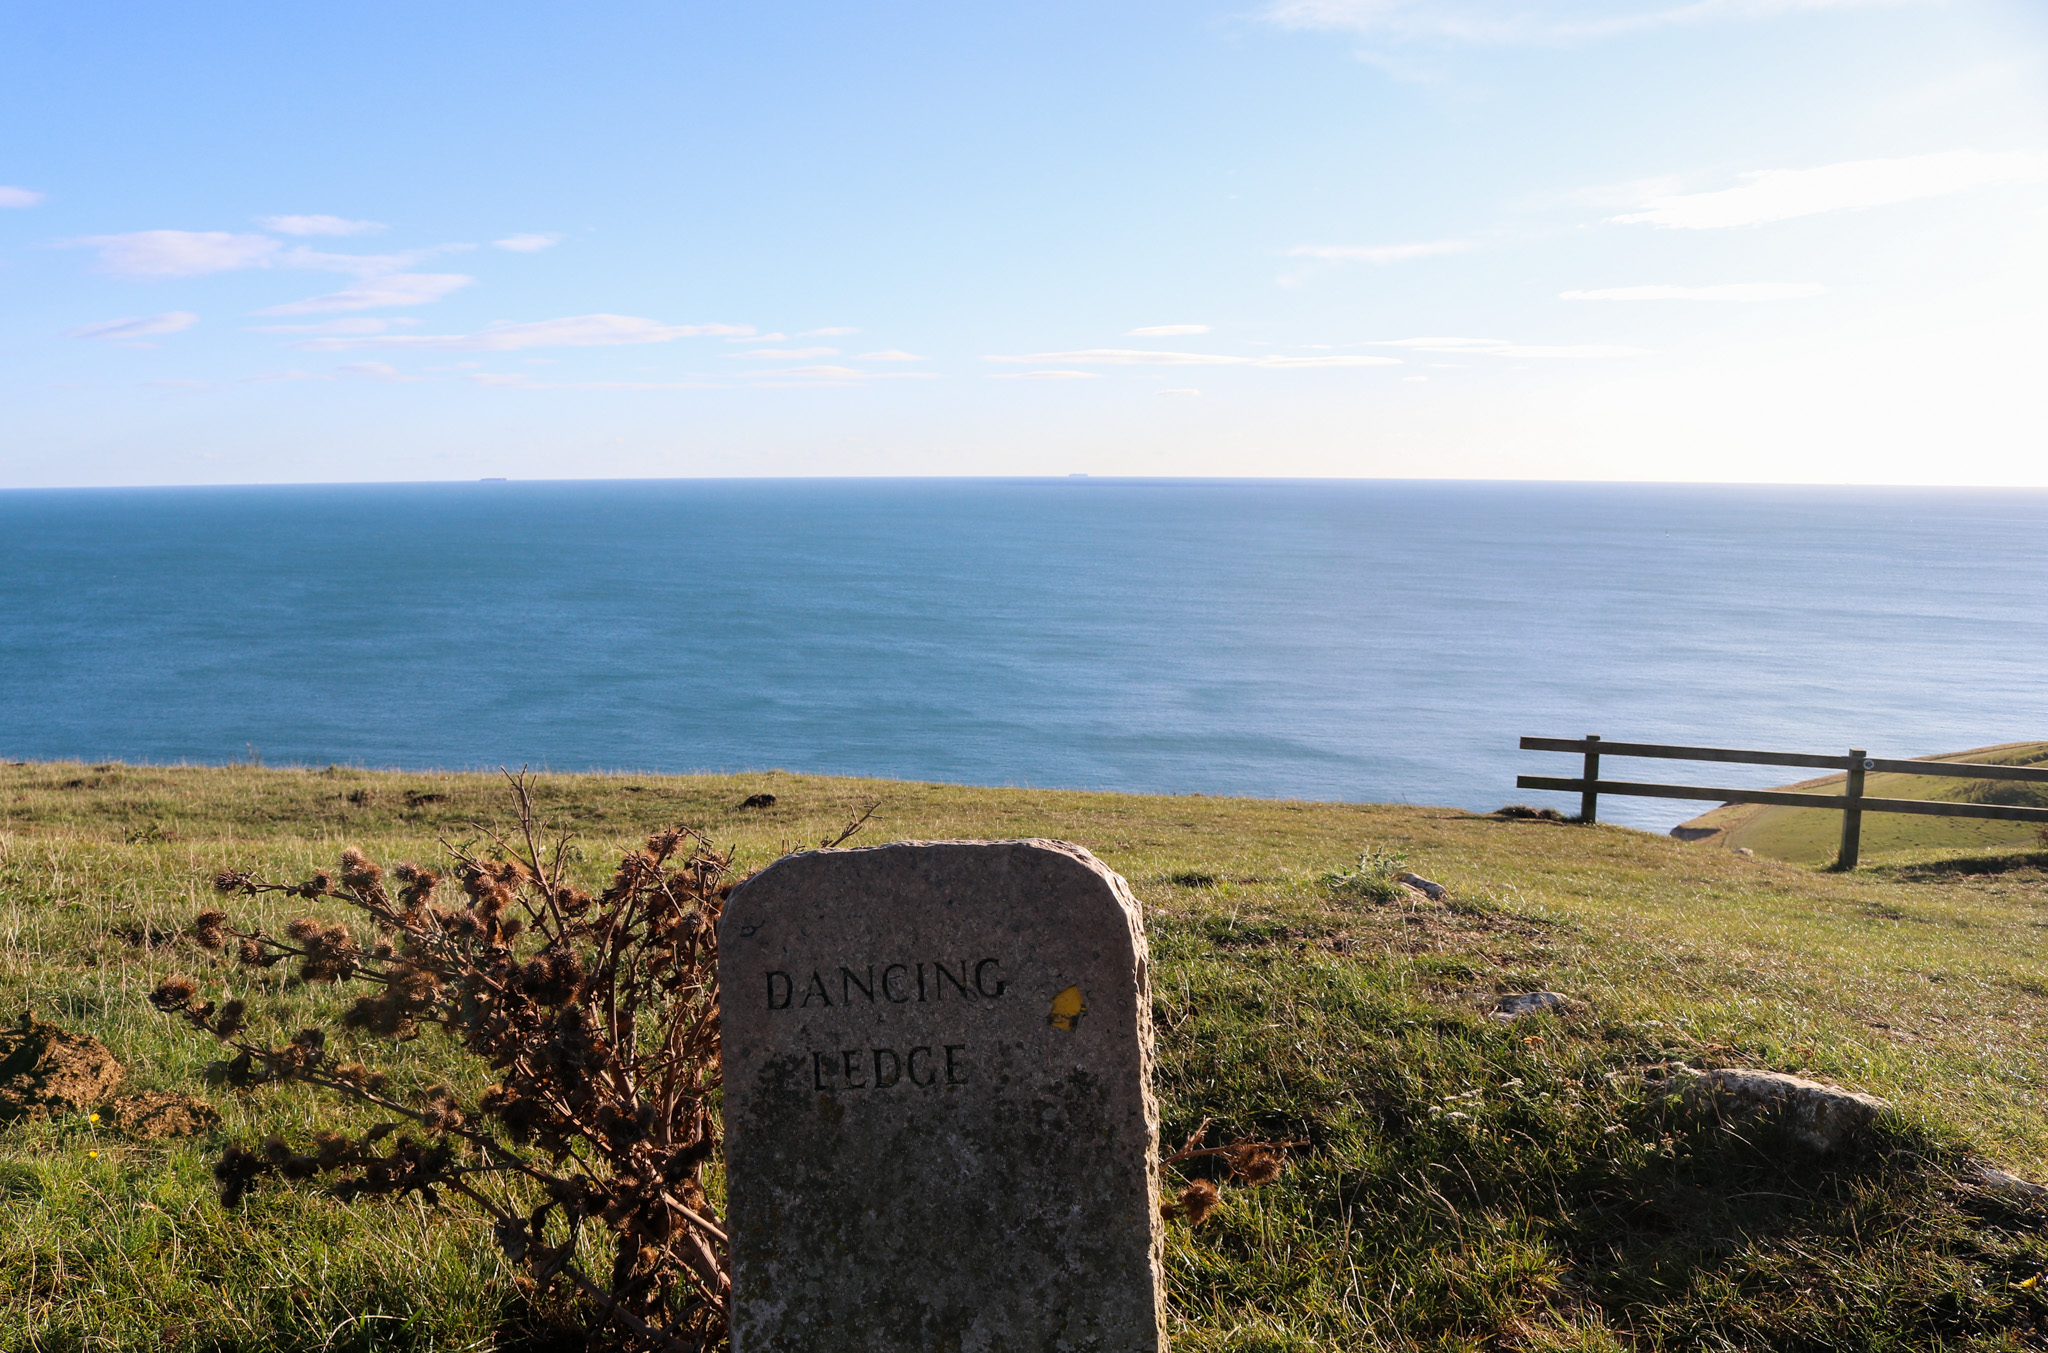 Stone sign at Dancing Ledge overlooking the sea